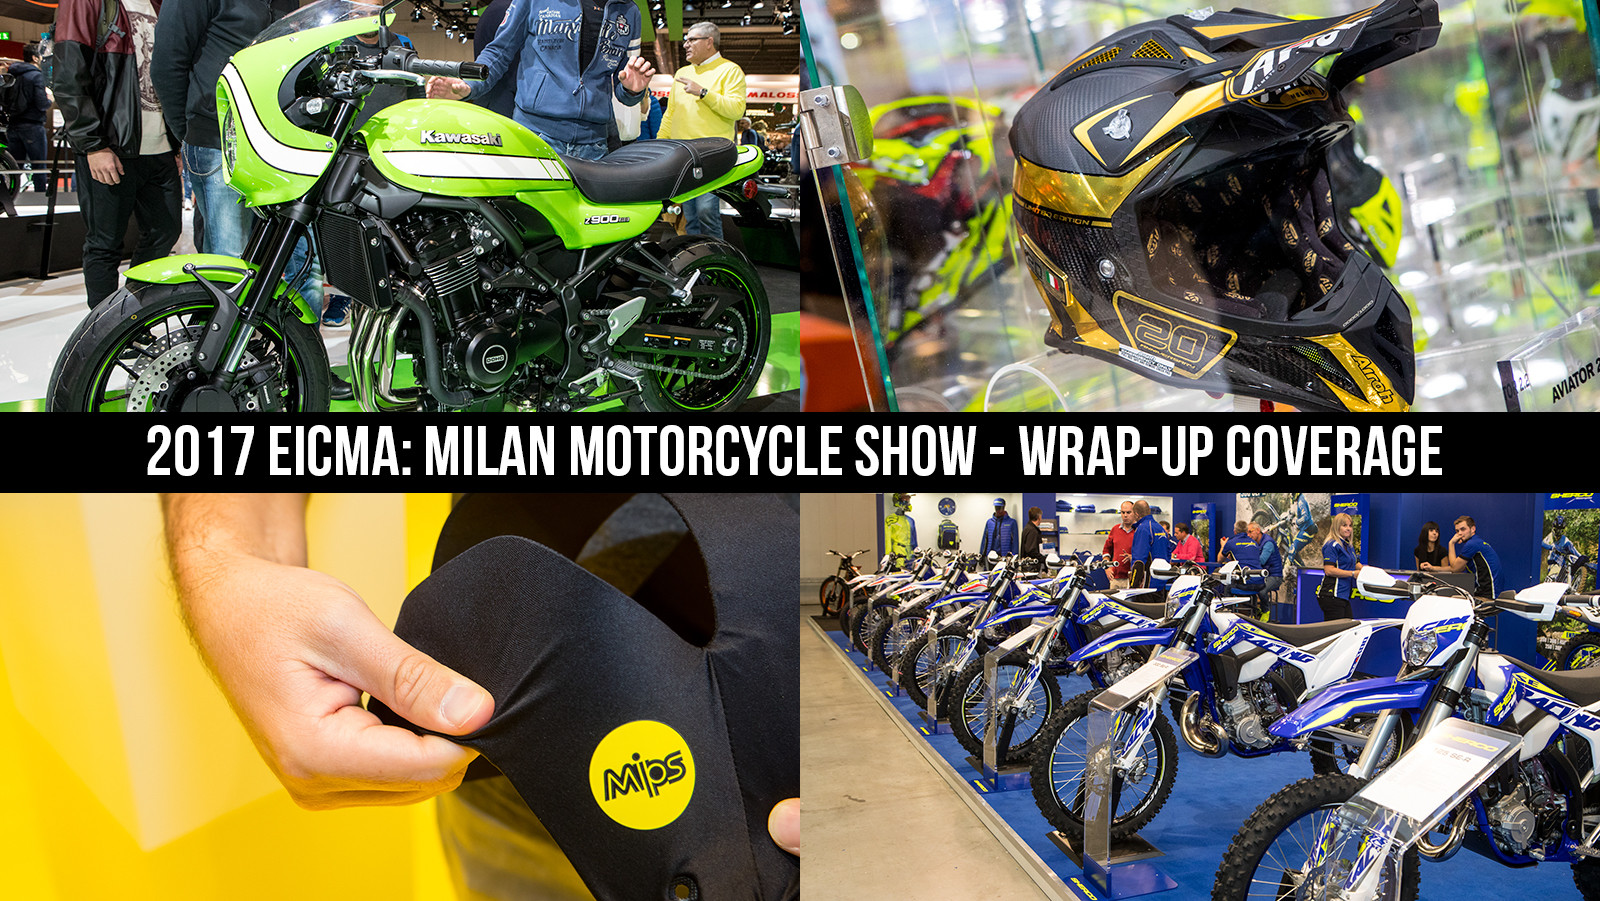 2017 EICMA - Milan Motorcycle Show: Wrap-Up Coverage - 2017 EICMA - Milan Motorcycle Show: Wrap-Up Coverage - Motocross Pictures - Vital MX